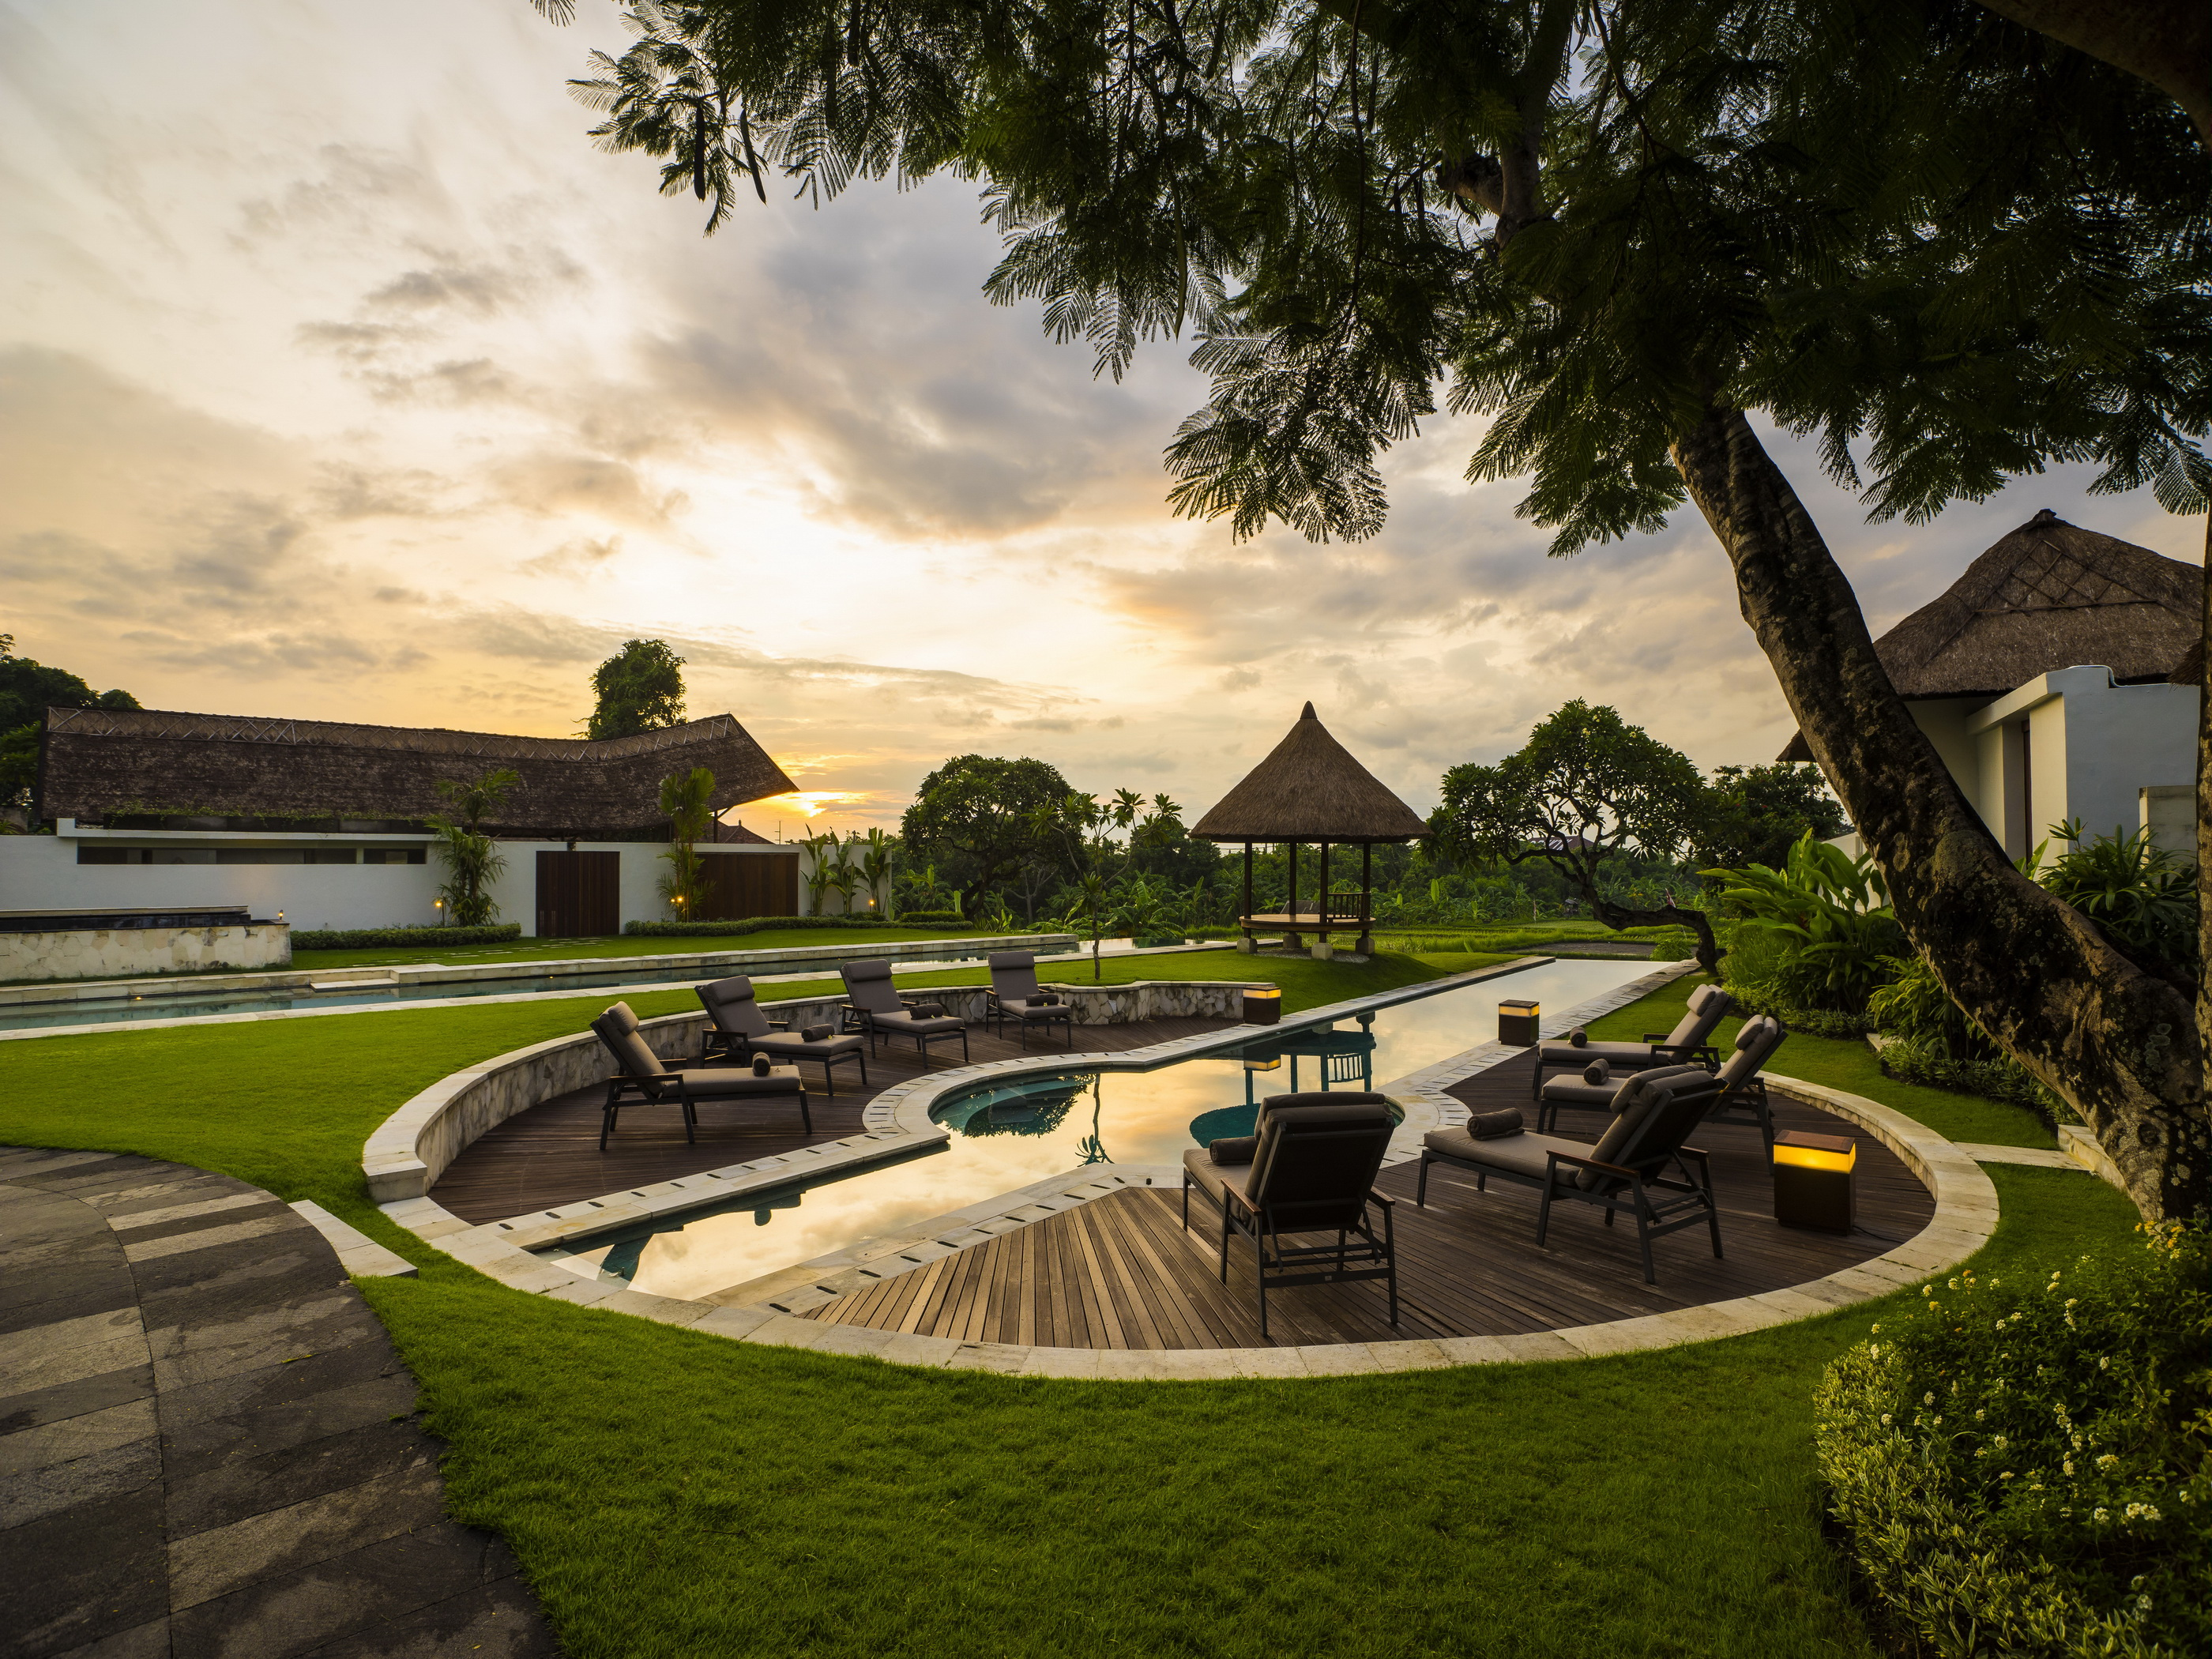 The Samata , Life style retreat - Sanur / Bali